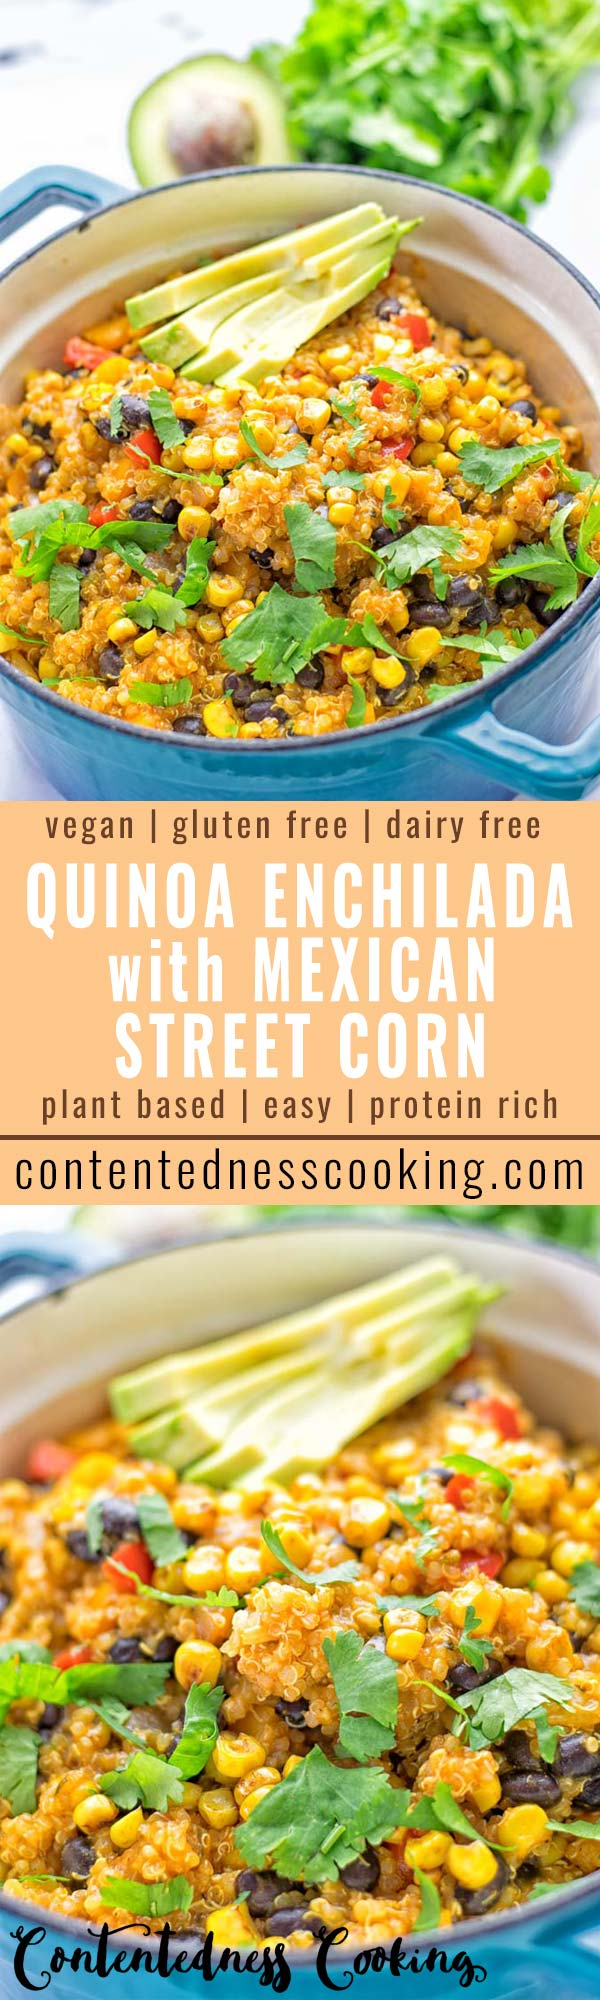 Quinoa Enchilada with Mexican Street Corn | #vegan #glutenfree #contentednesscooking #plantbased #dairyfree